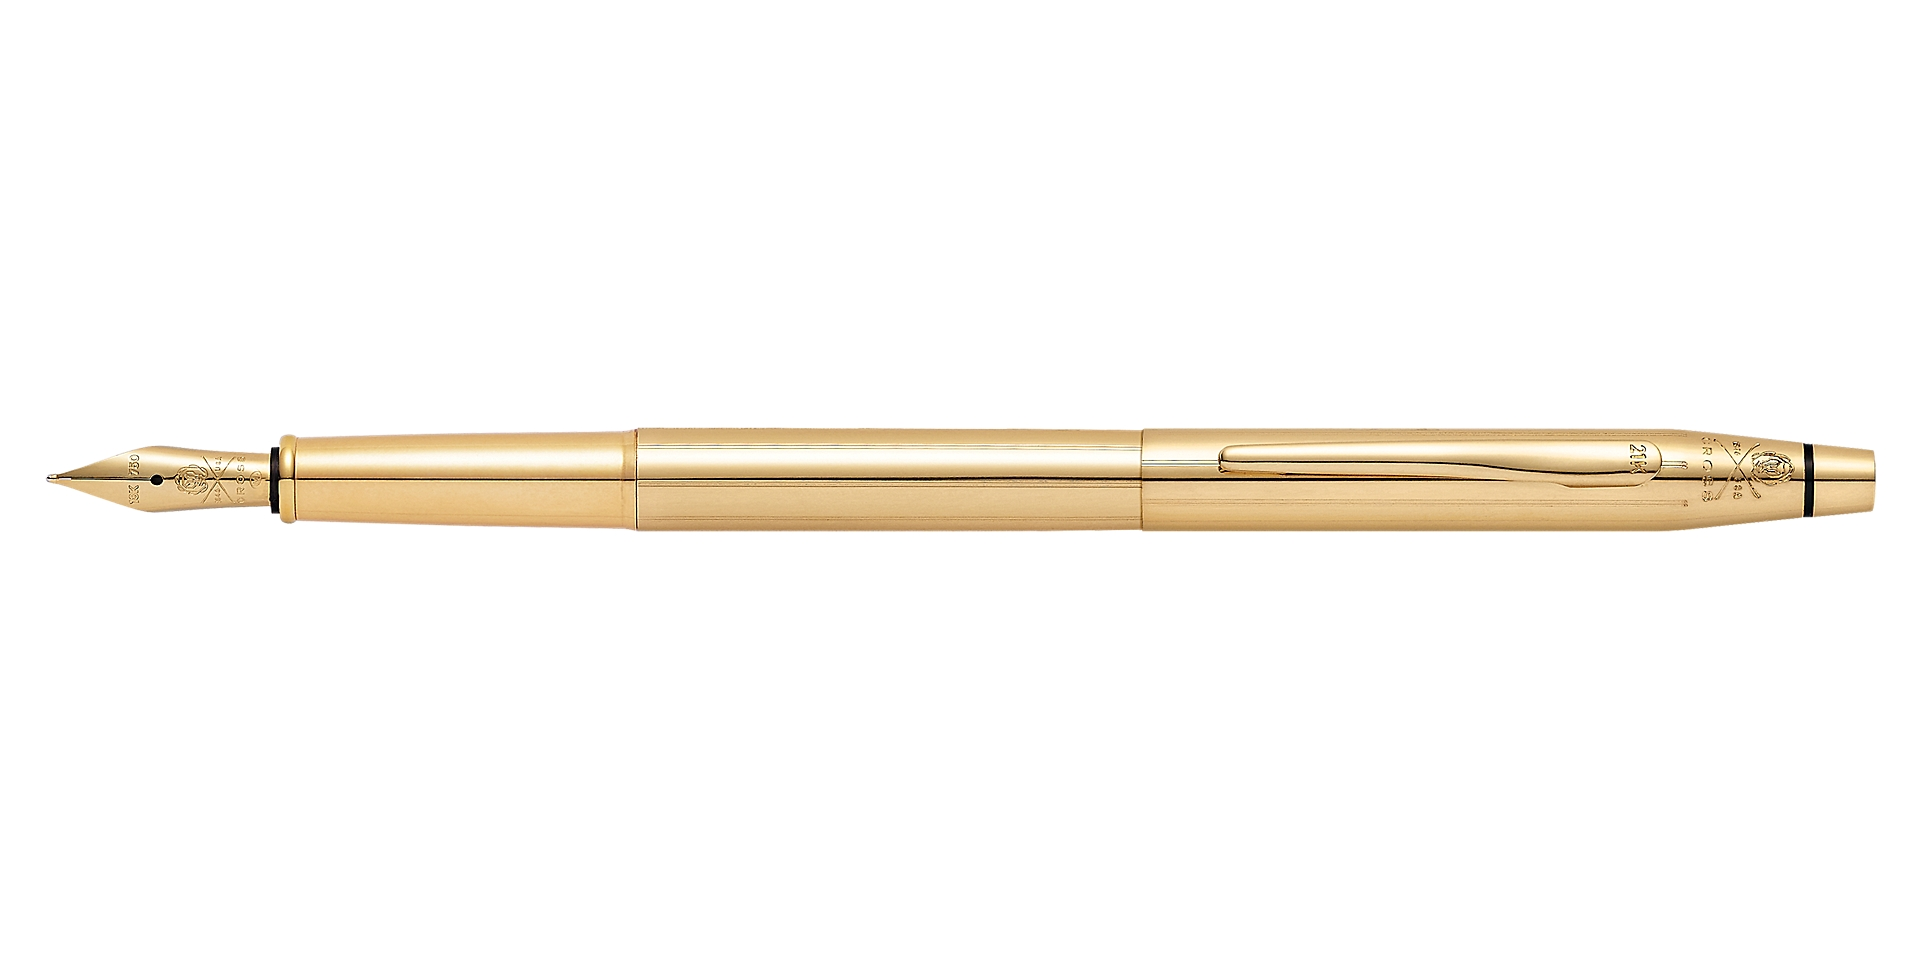 Cross 21st Century Limited-Edition 21Karat Solid-Gold Fountain Pen Picture